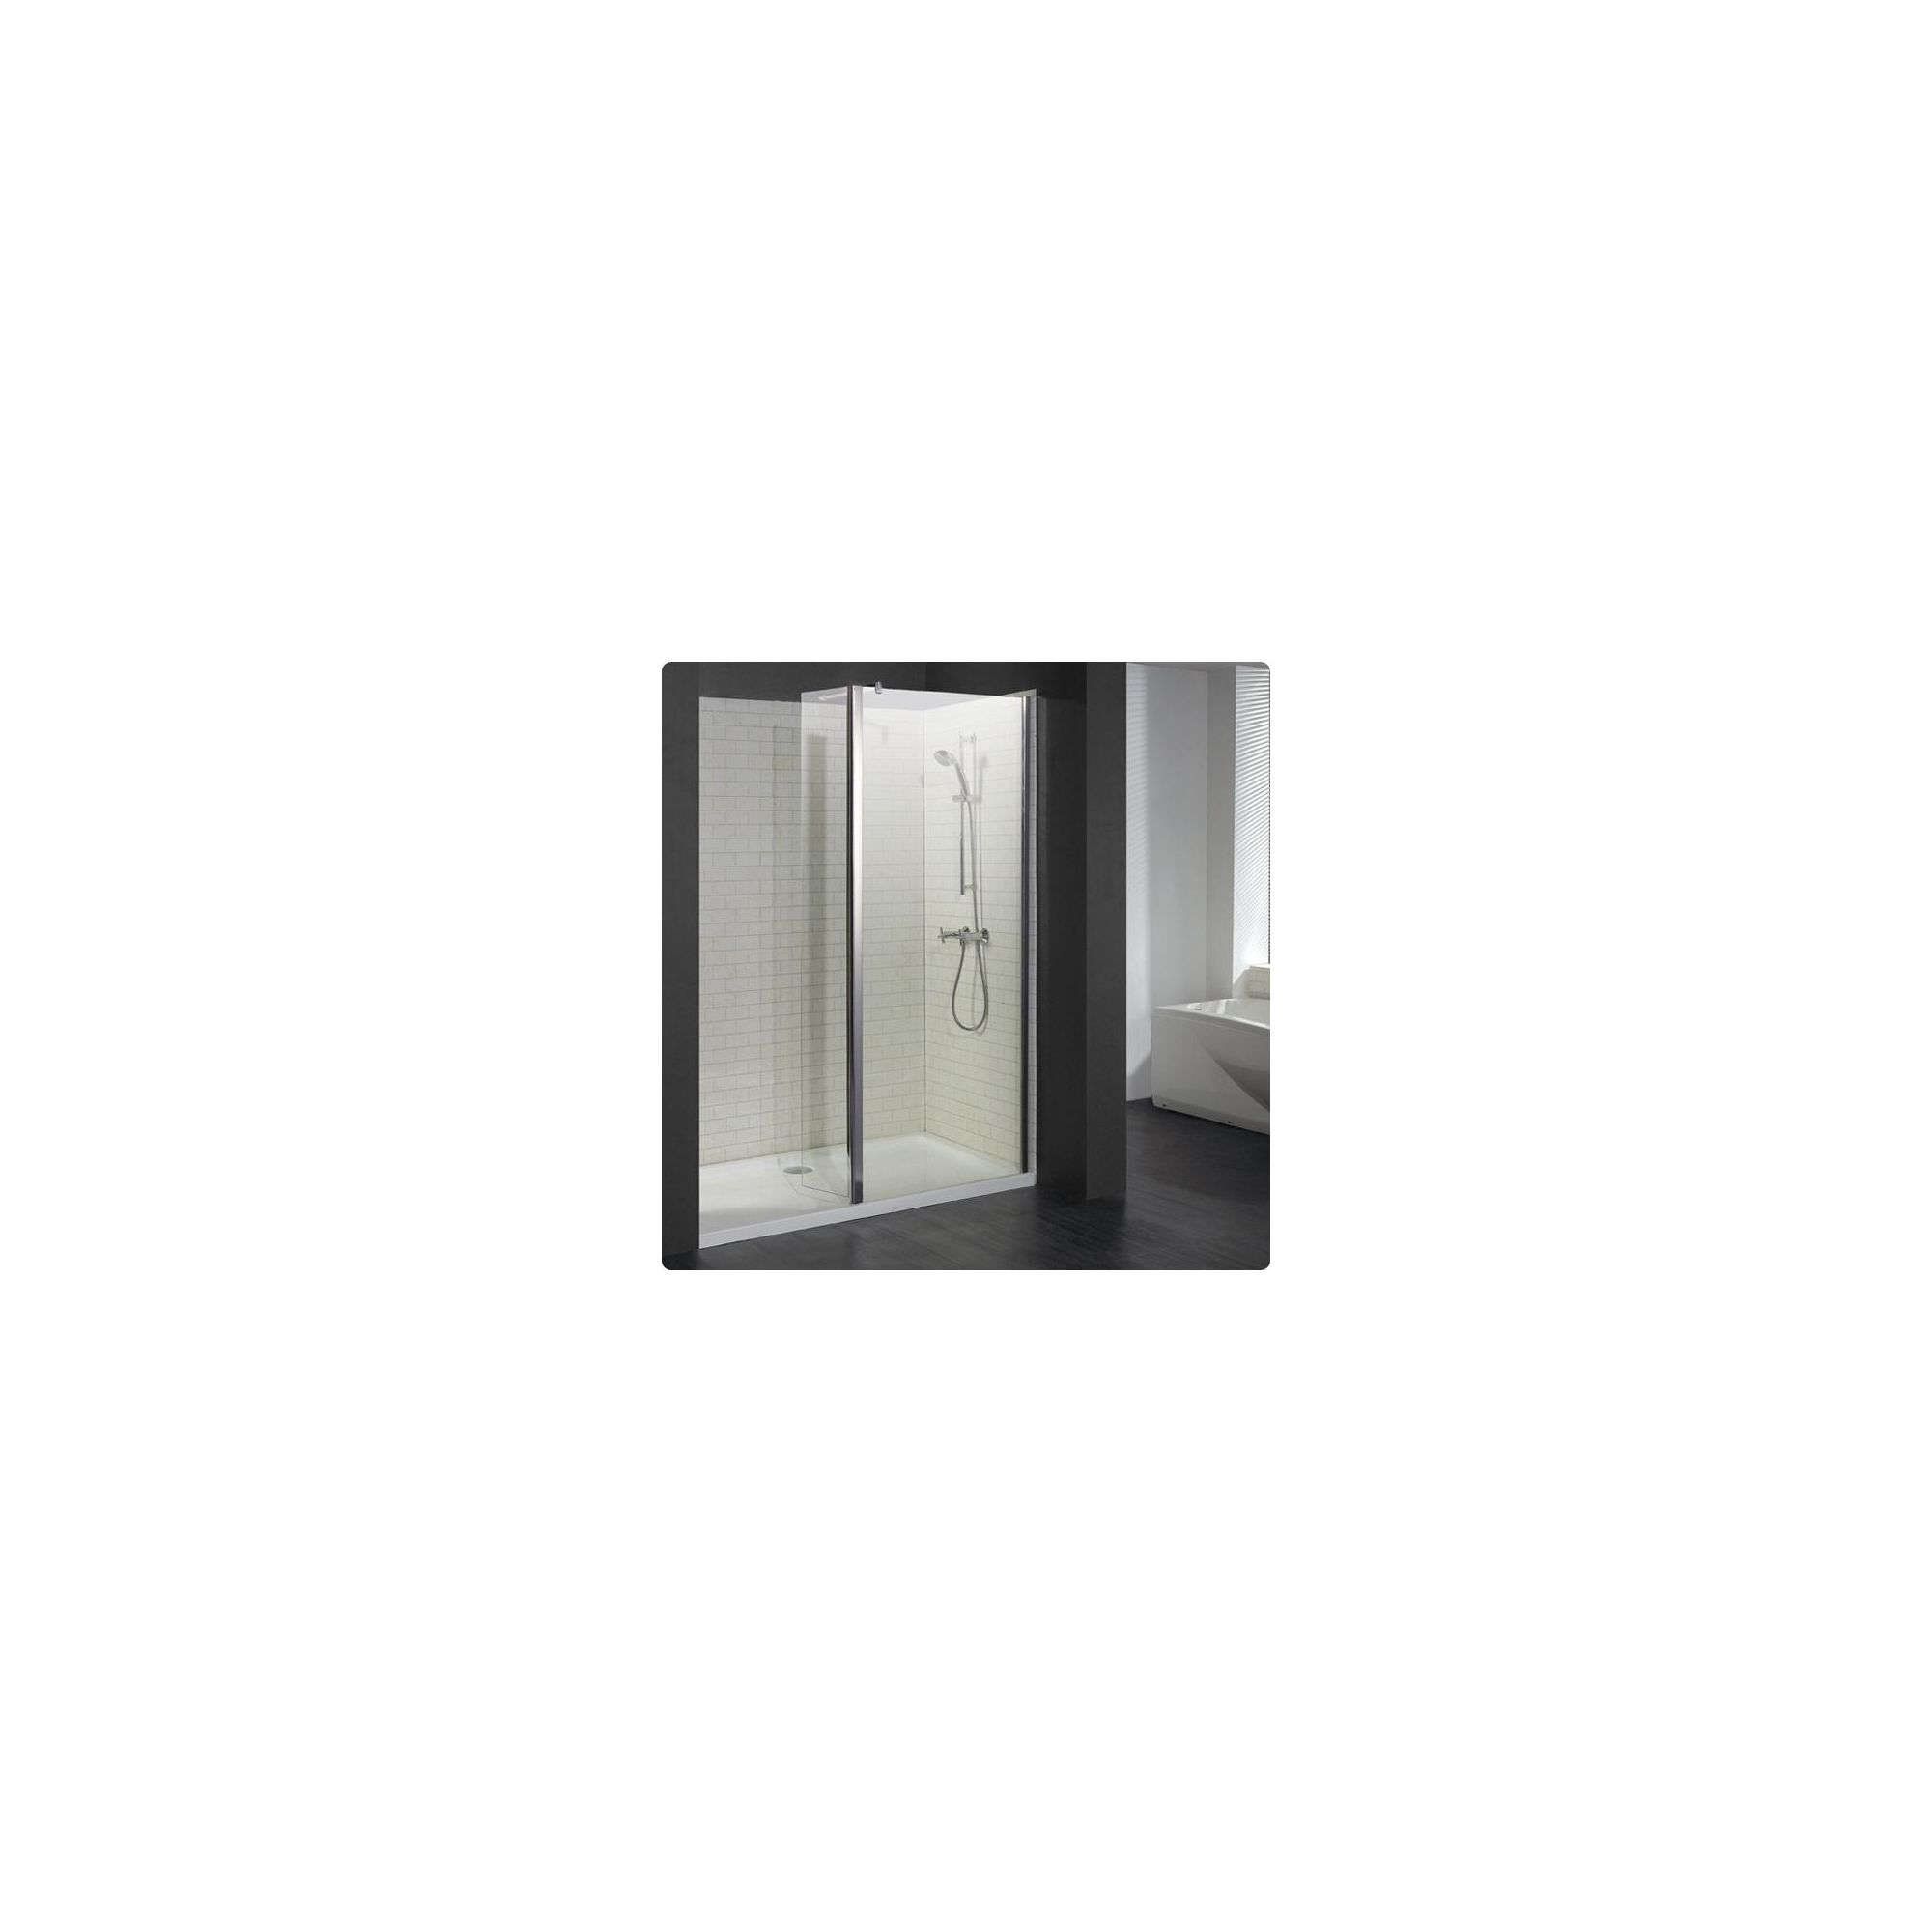 Duchy Choice Silver Walk-In Shower Enclosure 1500mm x 900mm (Complete with Tray), 6mm Glass at Tesco Direct